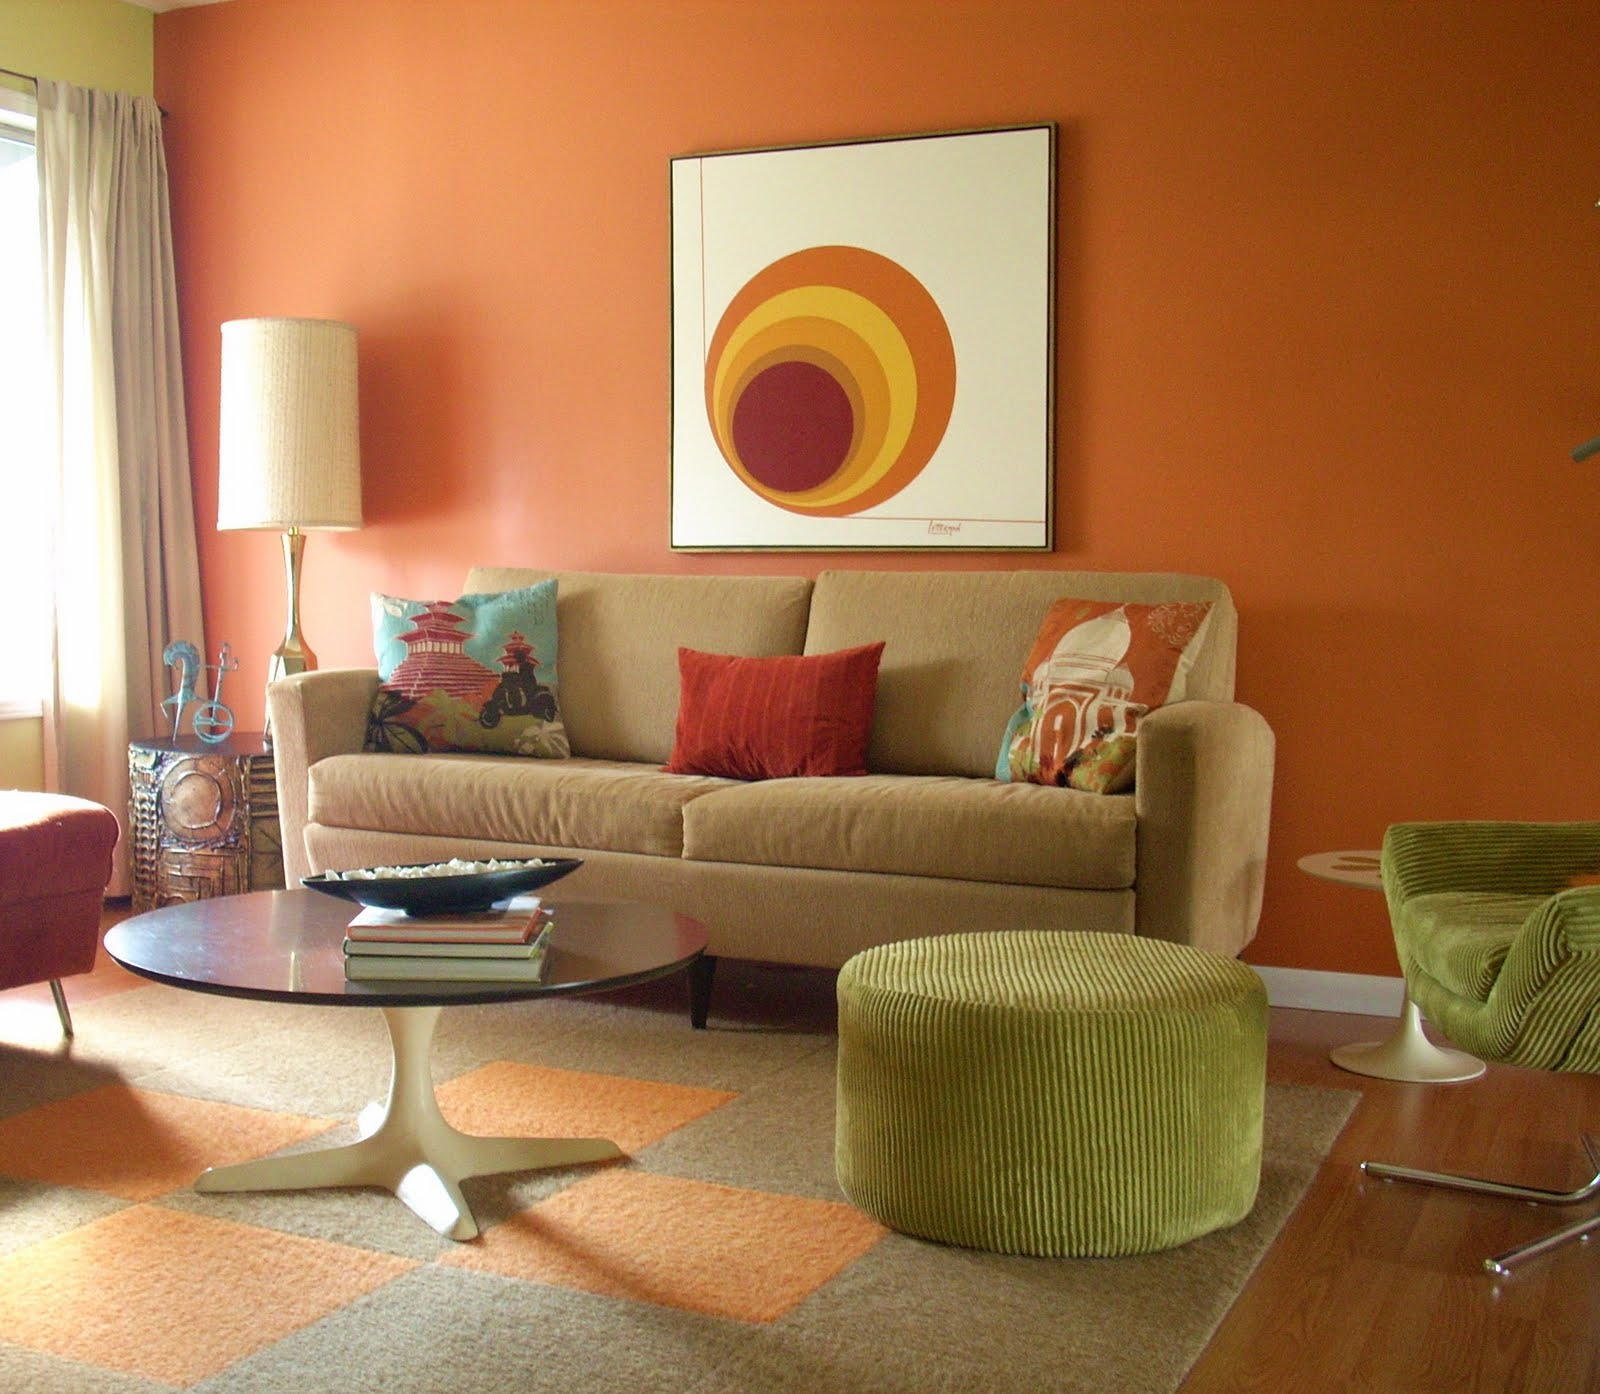 Newly Wed: Tips to Décor Your New Home   My Decorative on Colourful Living Room  id=83740